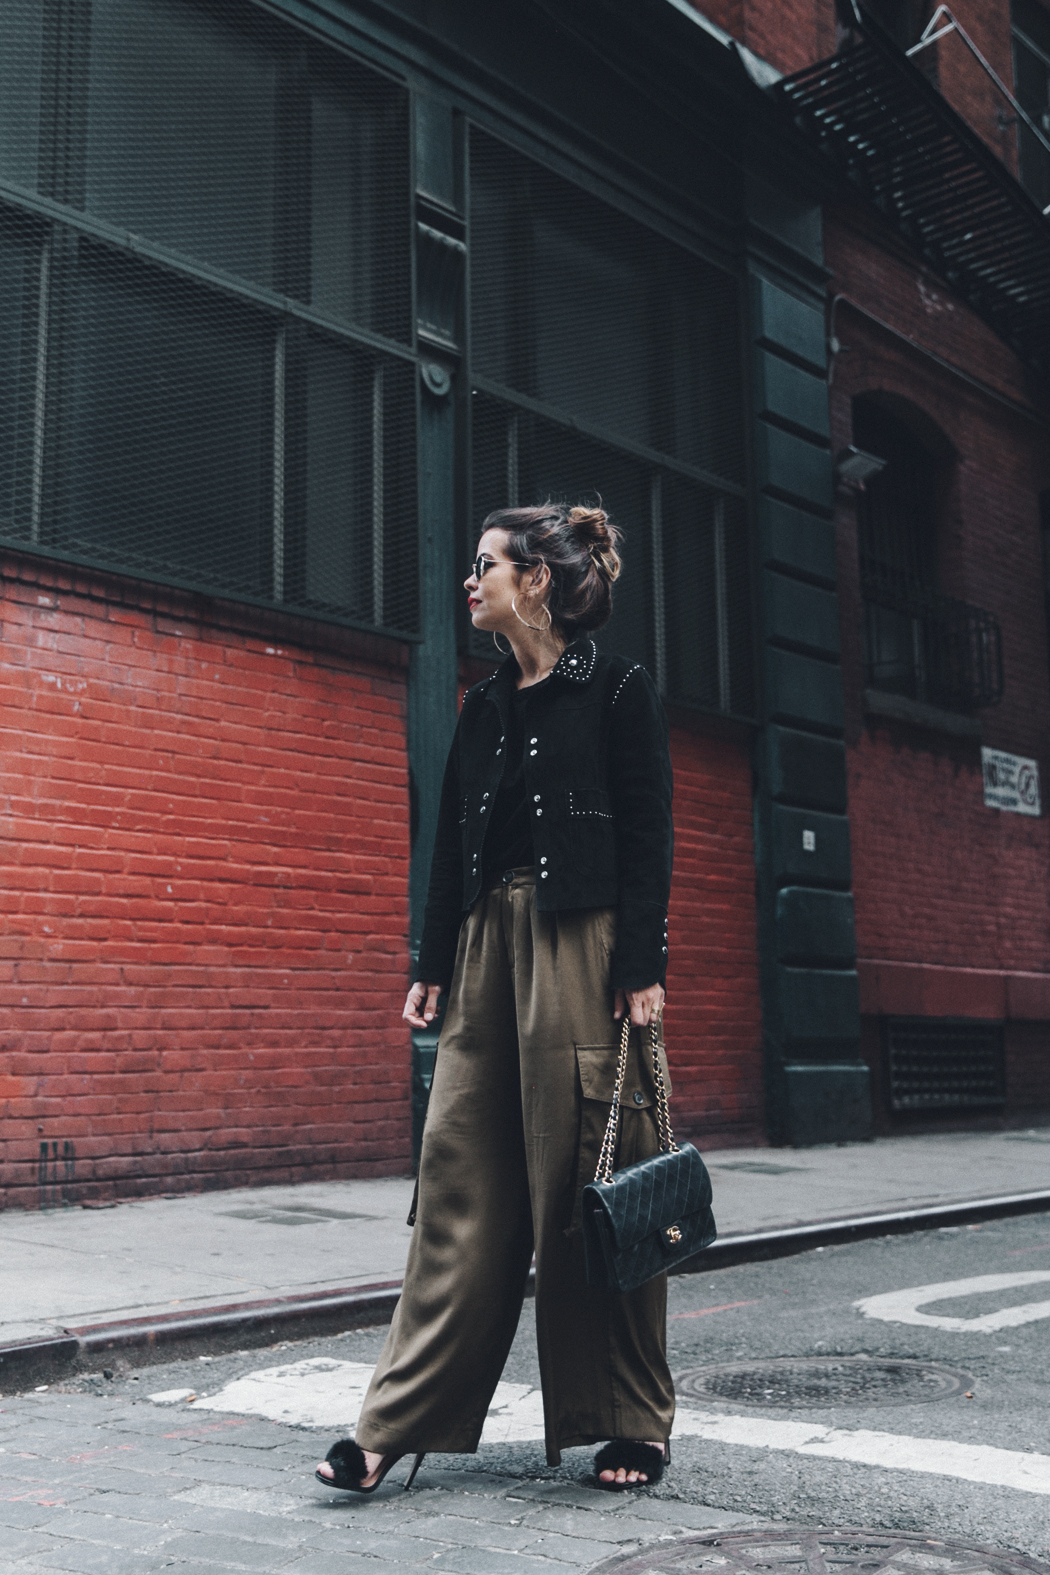 Khaki_Trousers-Sandro_Suede_Jacket-BNKR_Sandals-Fur_Sandals-Chanel_Bag-Outfit-Street_Style-NYC-1